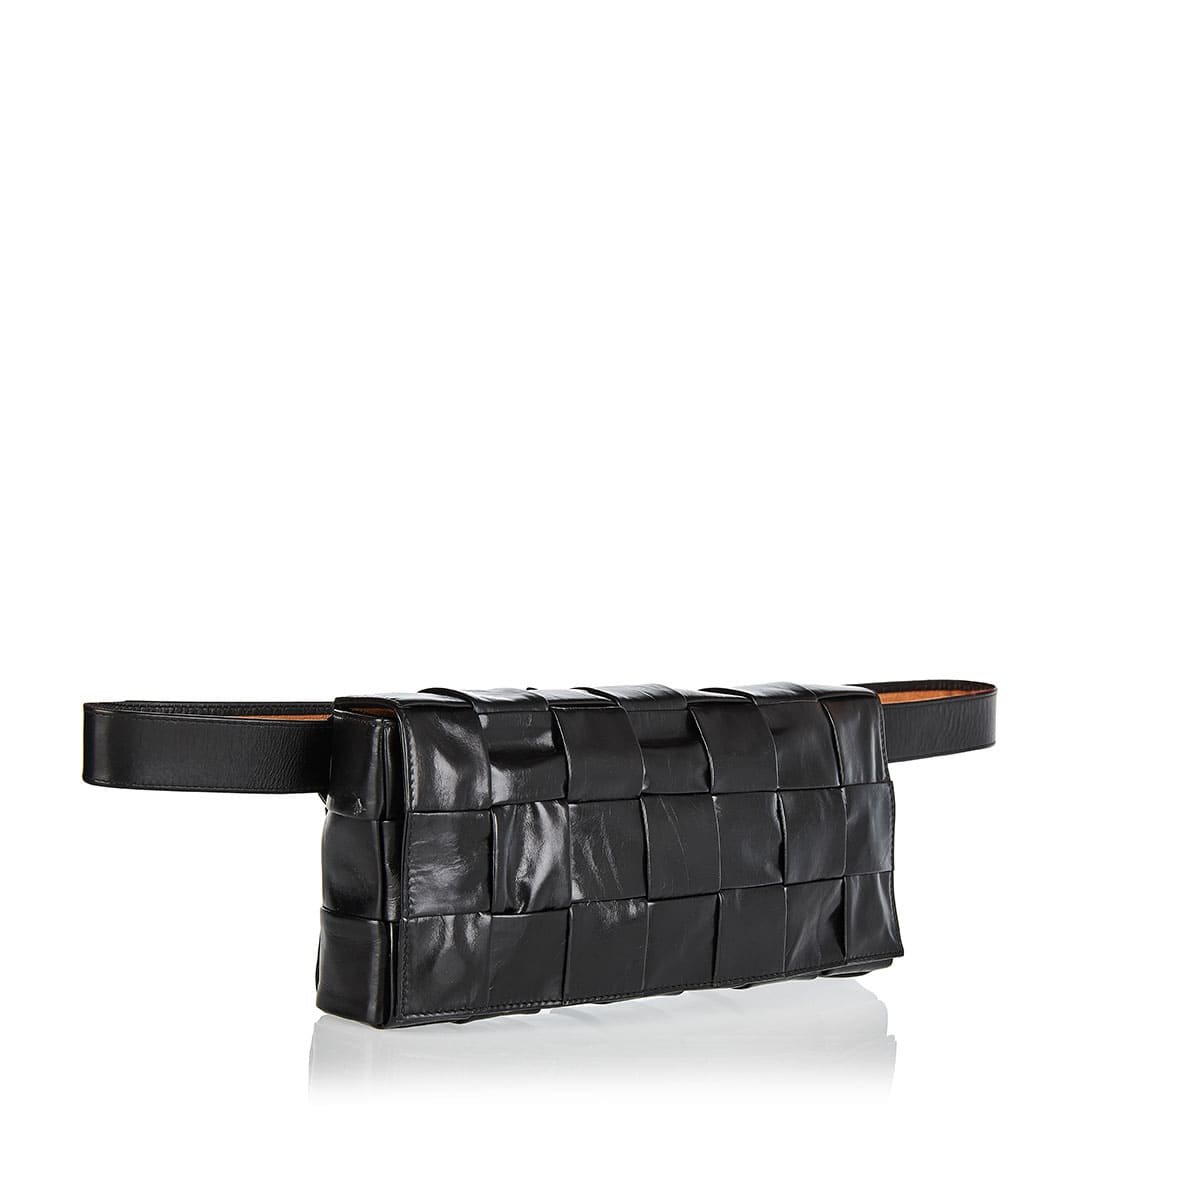 Maxi Intreccio leather crossbody bag